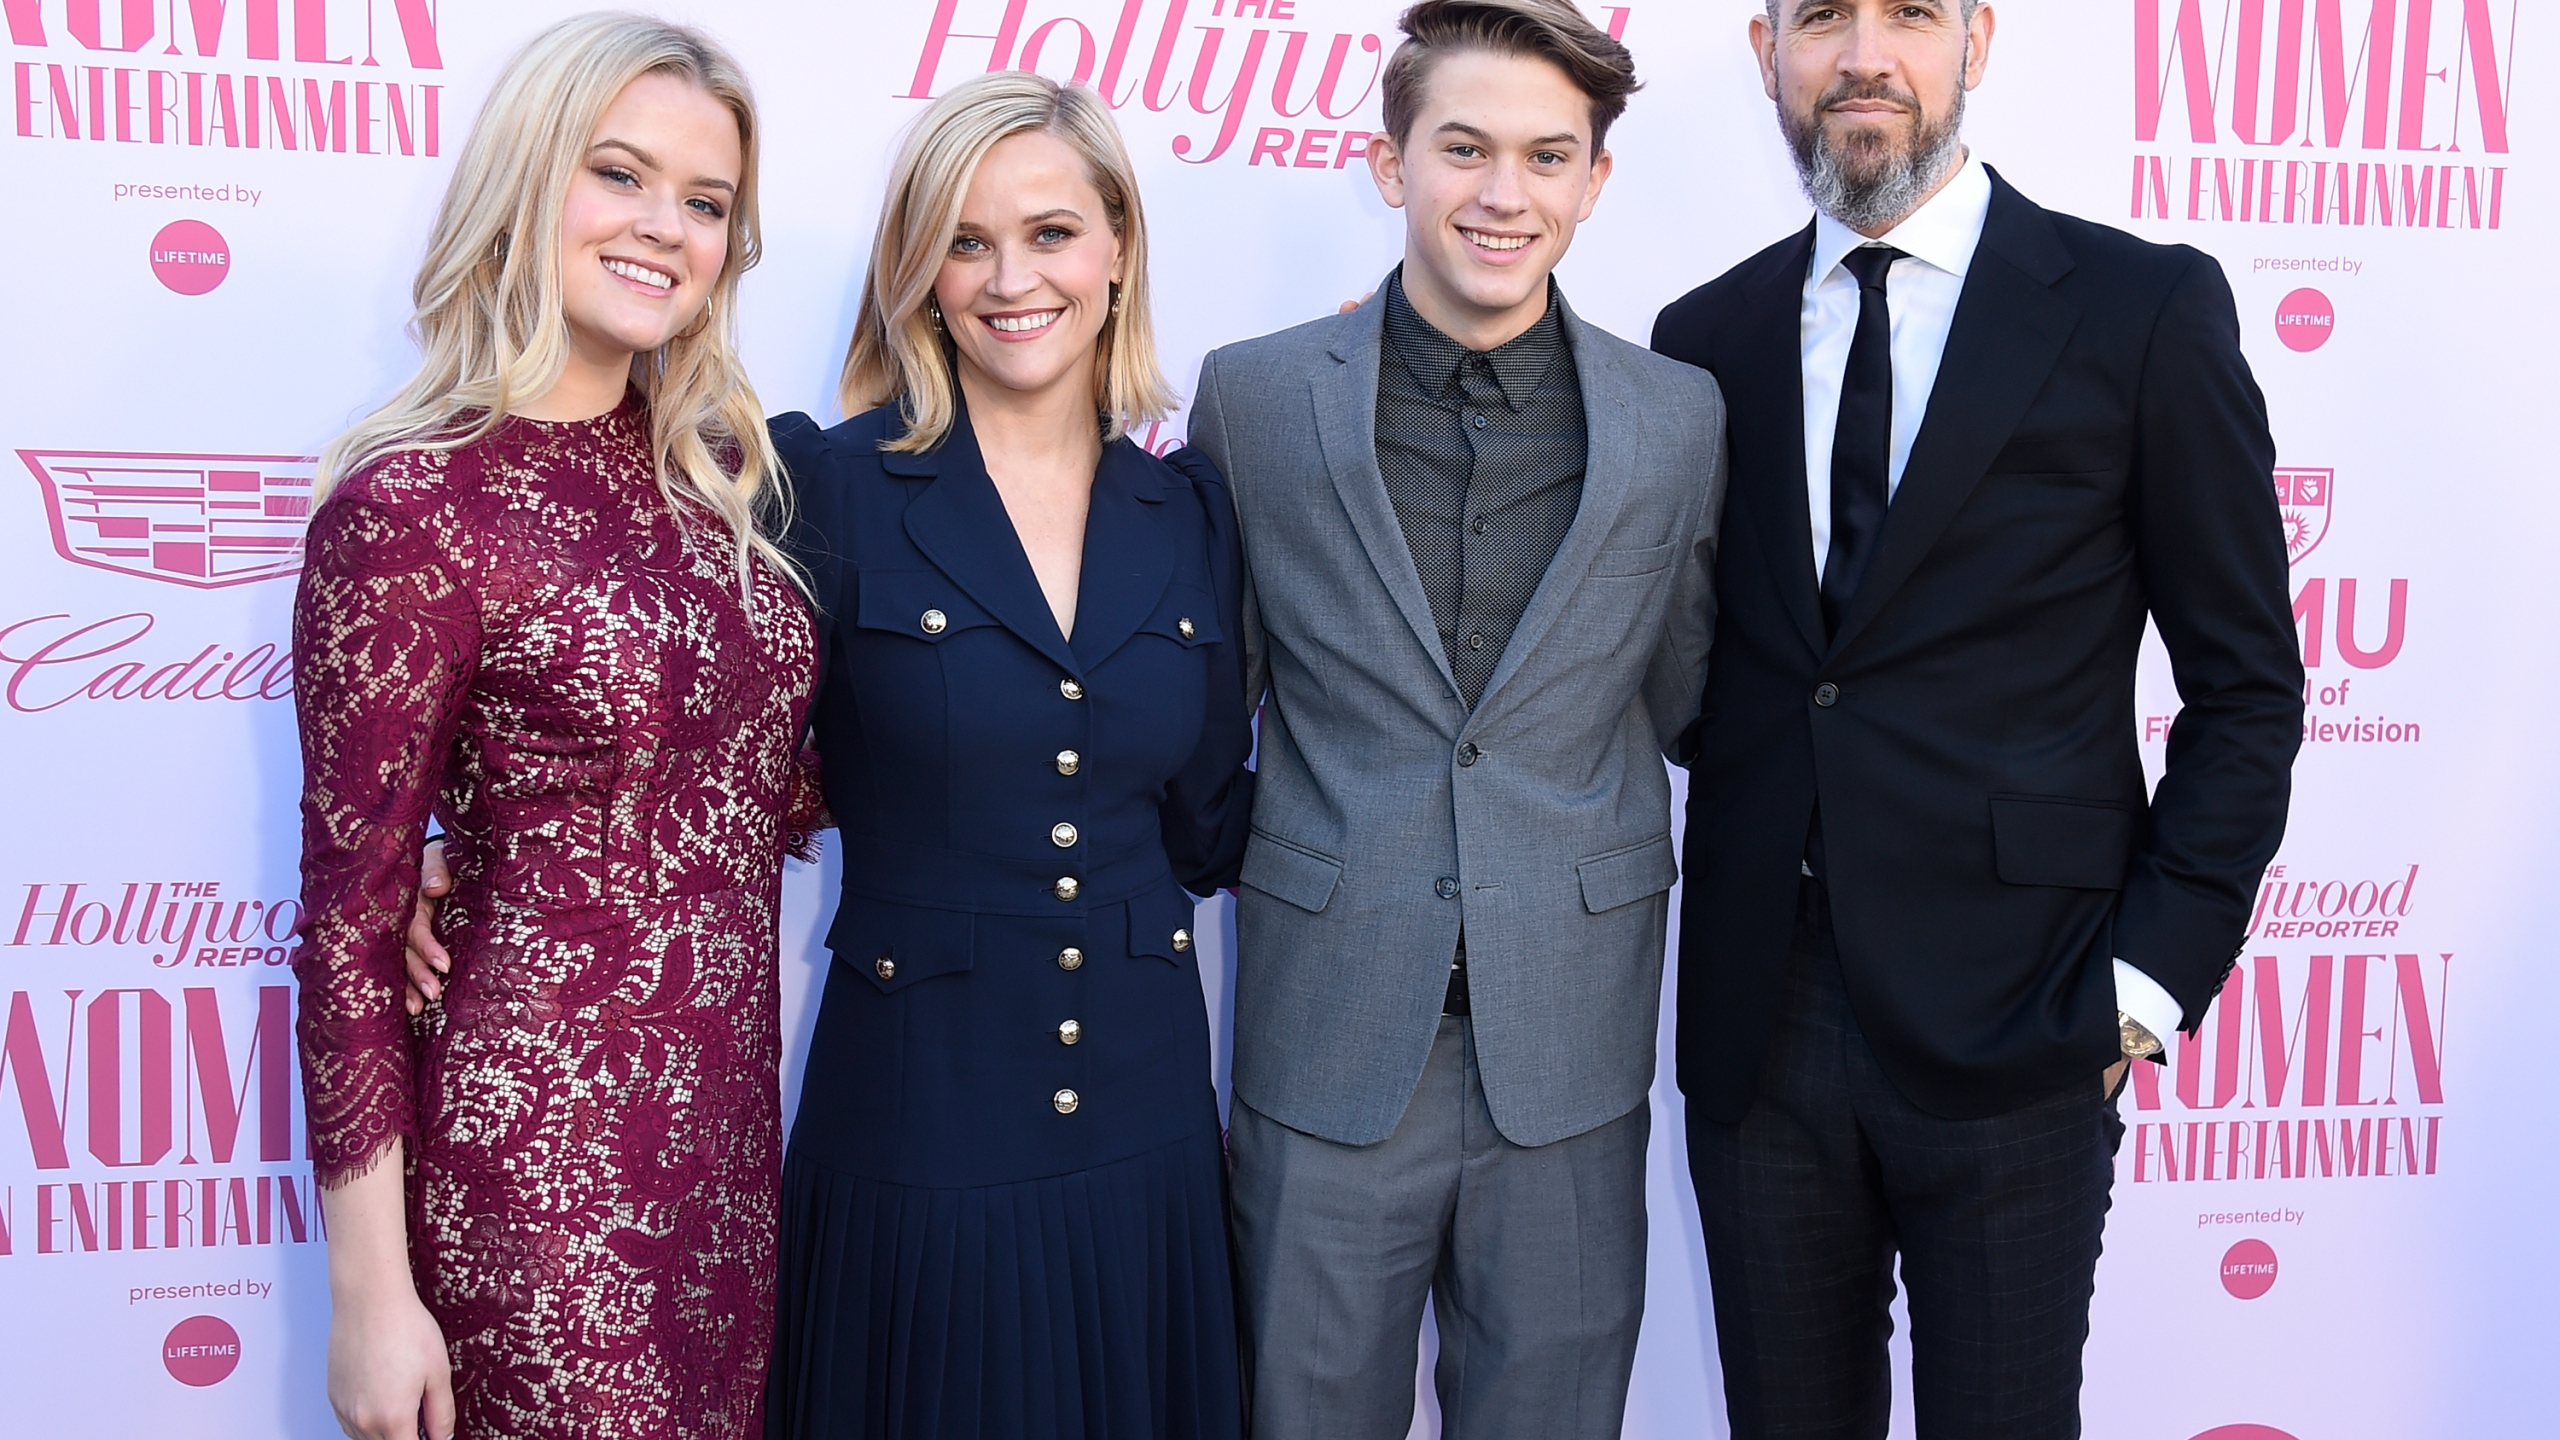 Ava Phillippe, Reese Witherspoon, Deacon Phillippe, Jim Toth